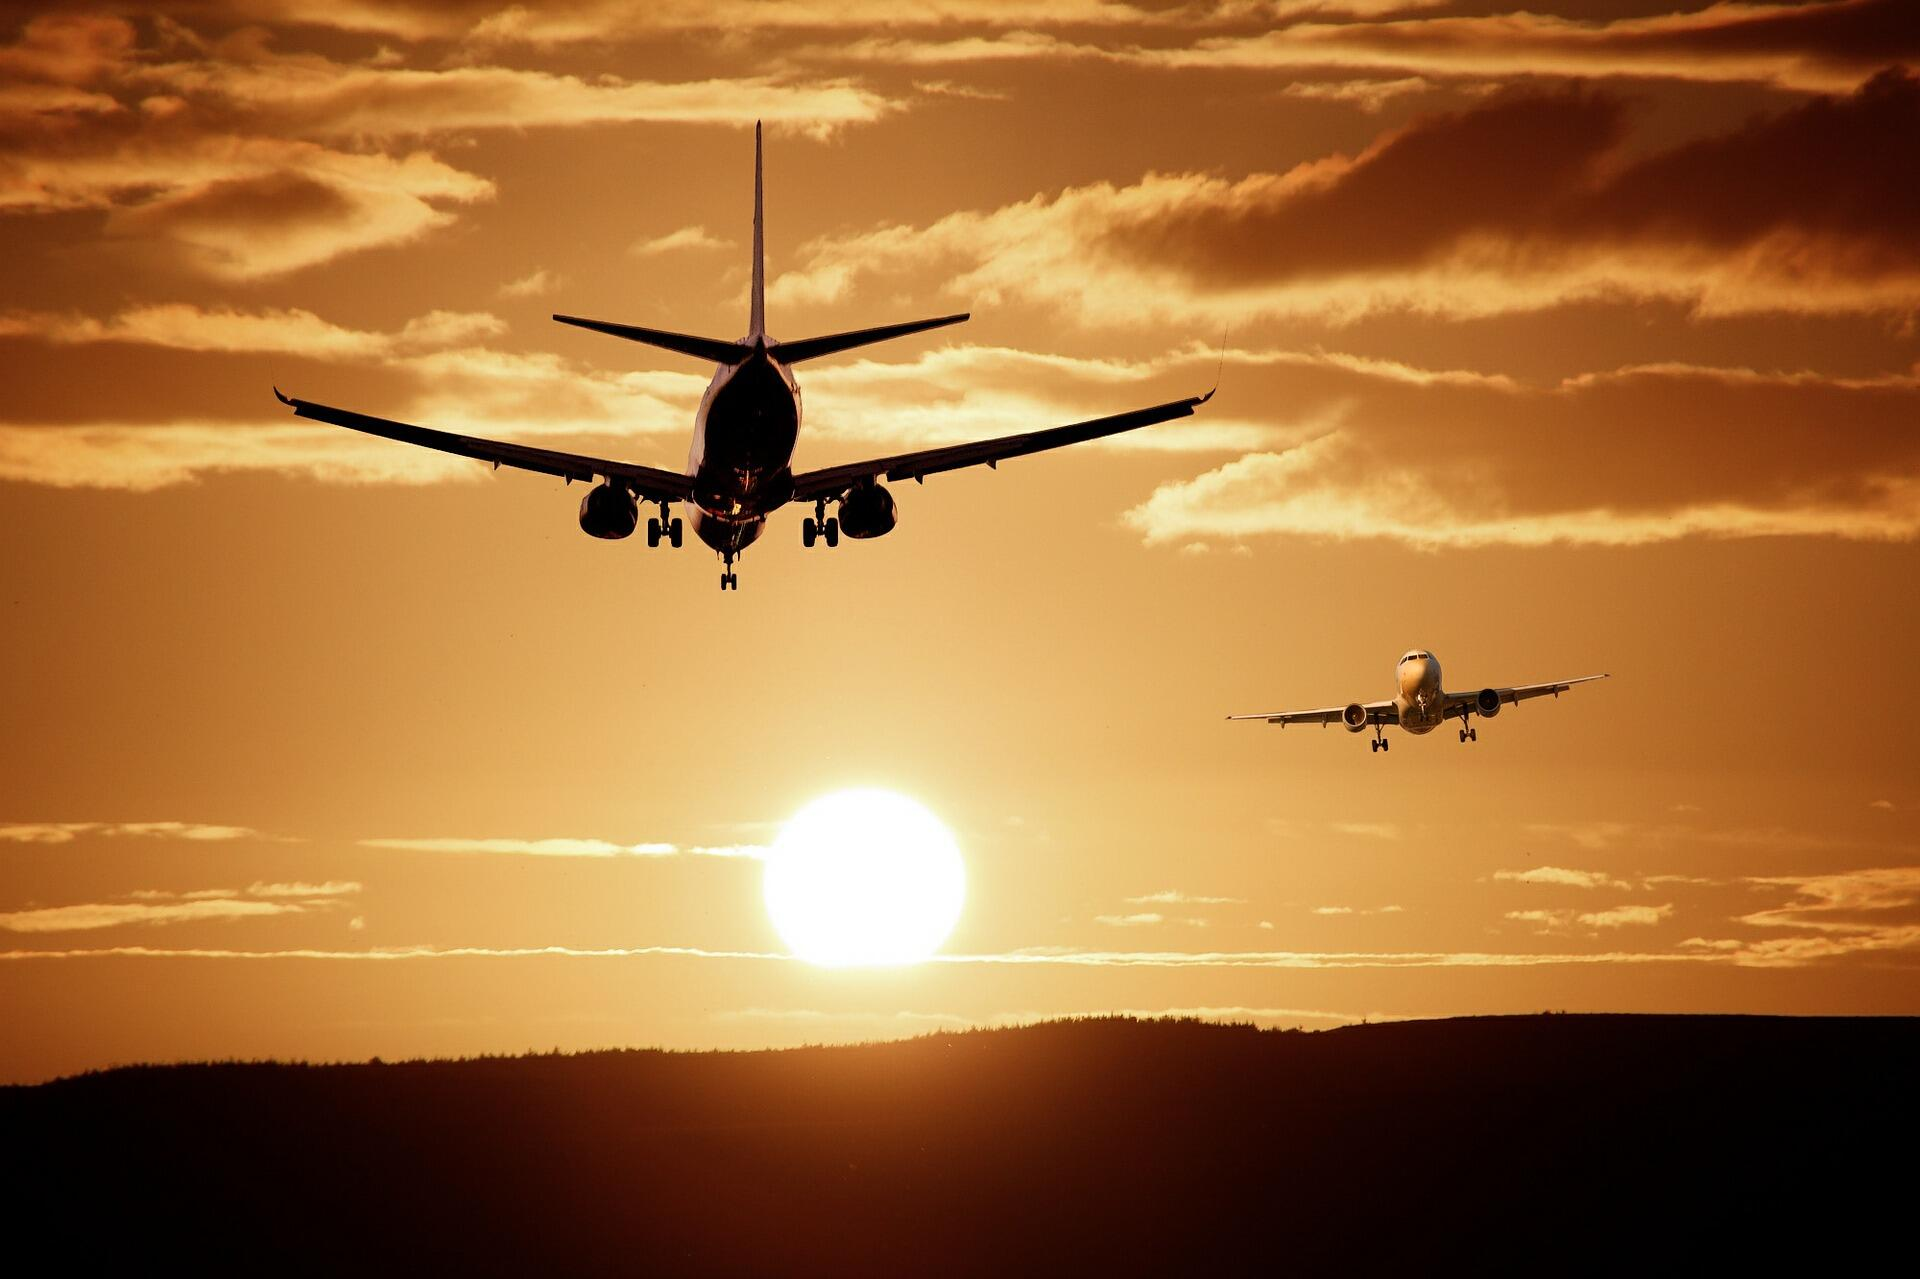 Two airplanes in the sunset.